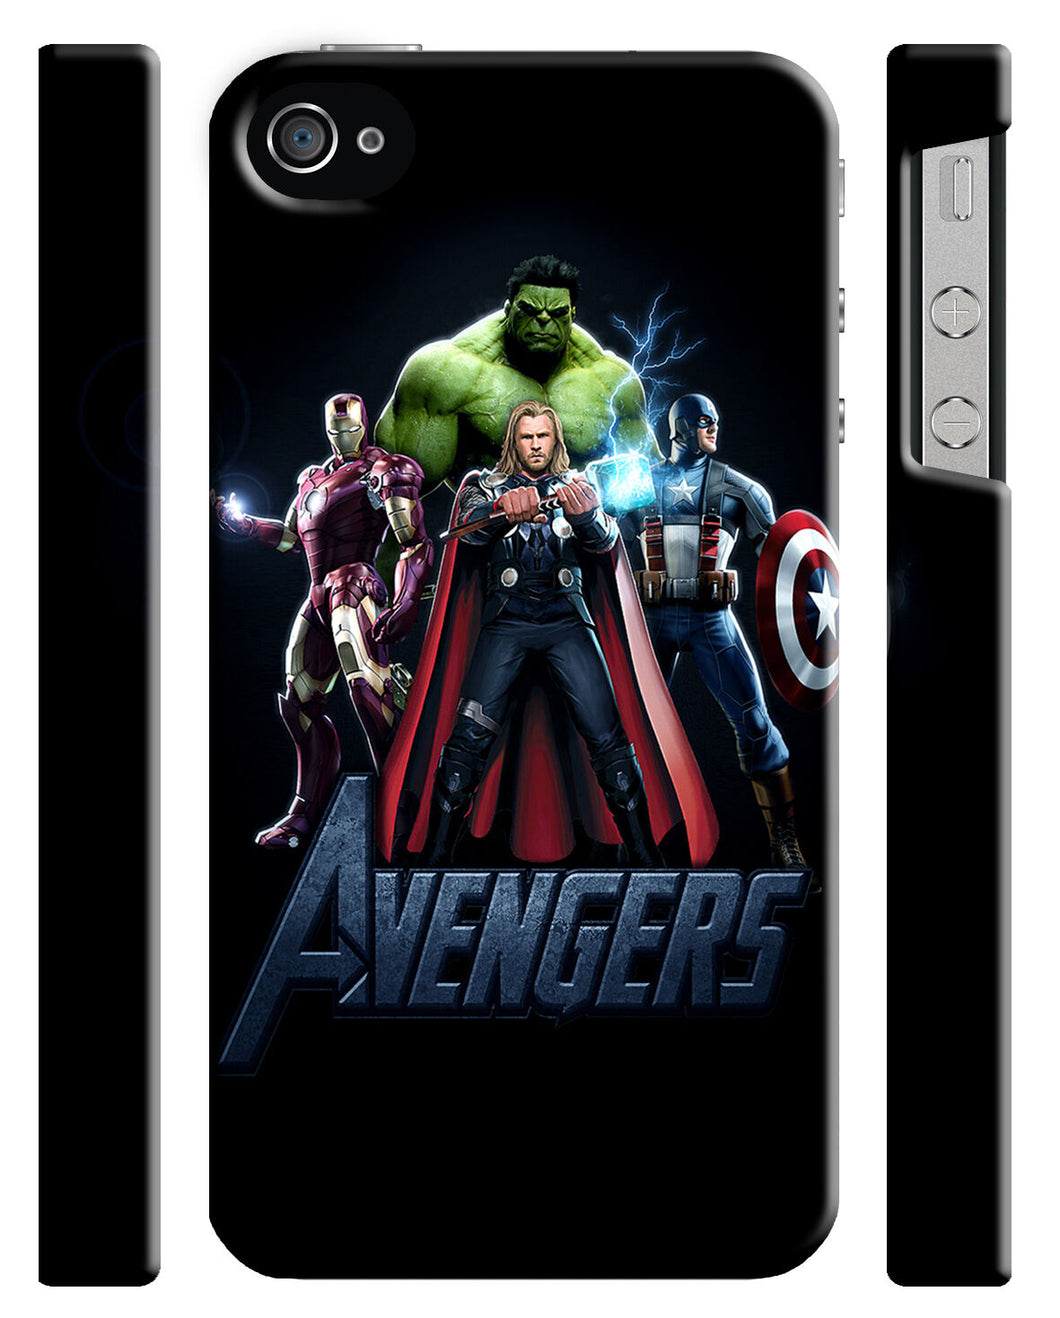 Avengers Age Of Ultron Iphone 4 4s 5 5s 5c 6 6S + Plus Cover Case Comics Kids